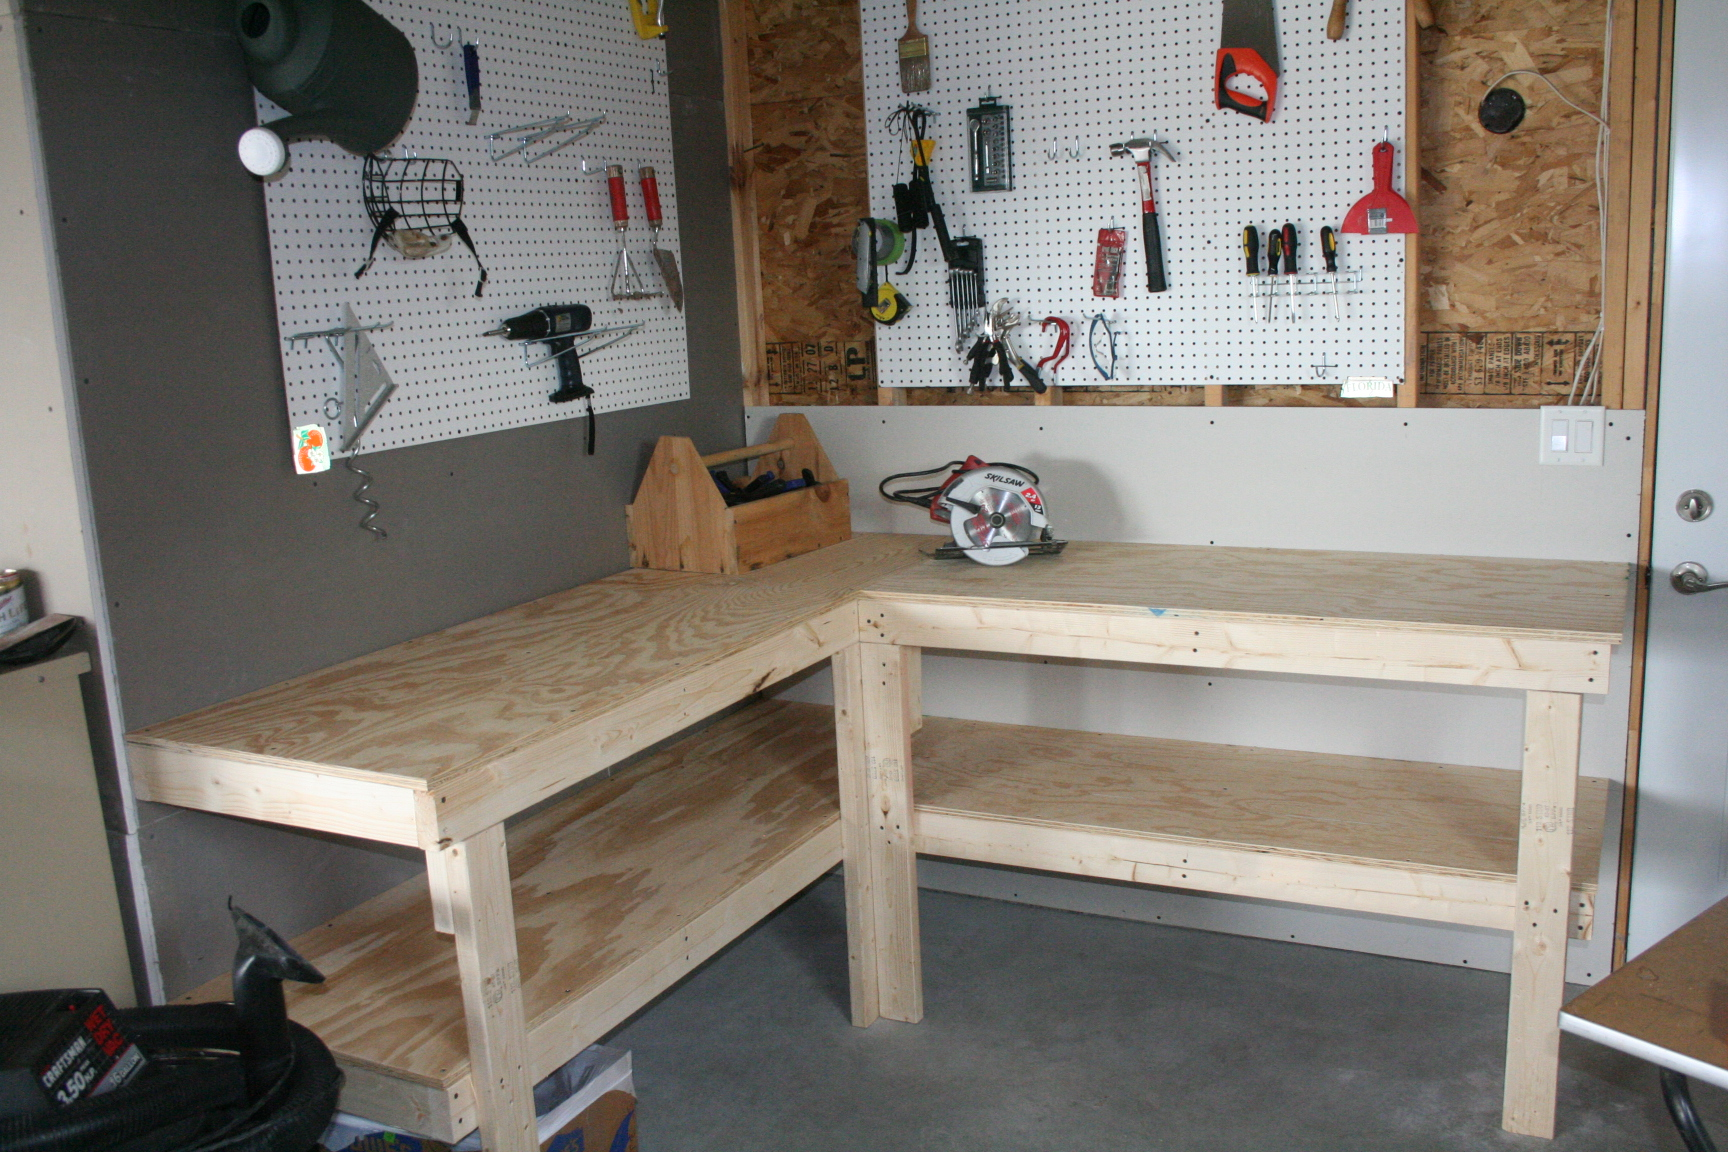 cool diy l shaped workbench plans wooden custom wood carving knives  with build workbench garage. Build Workbench Garage  How To Make A Workbench Out Of Pallets